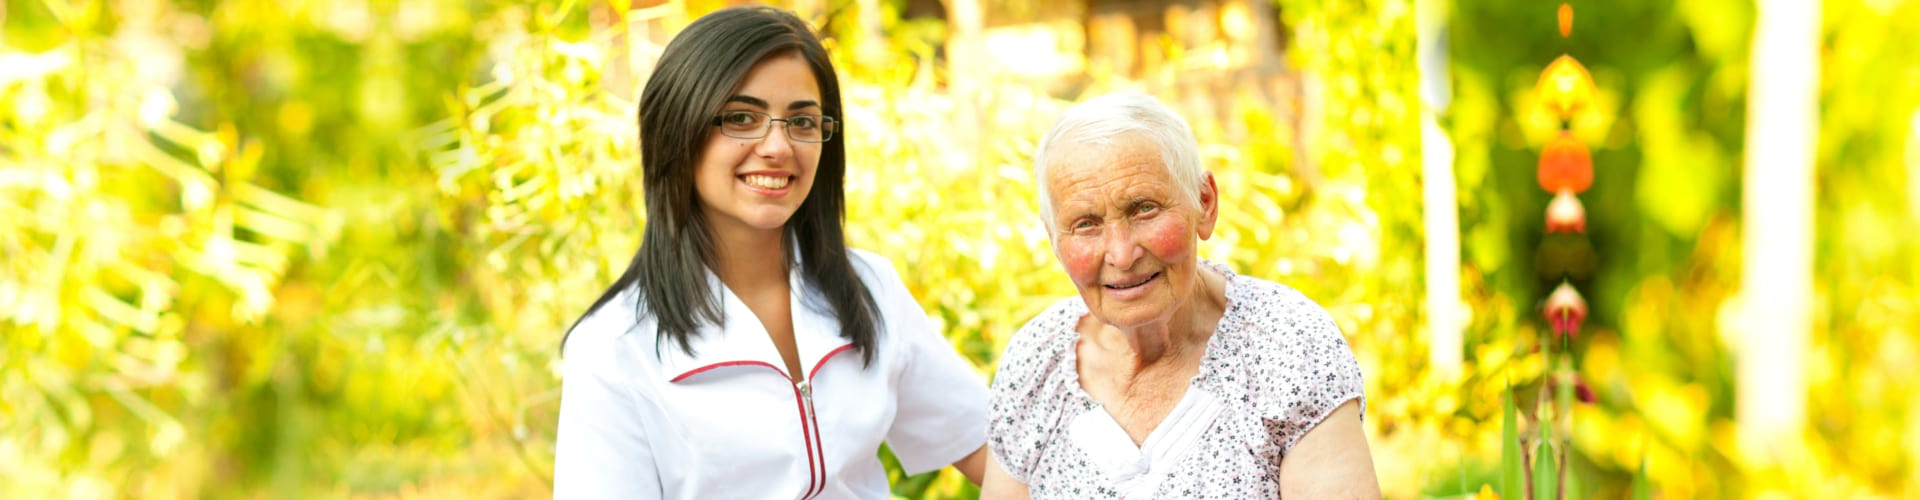 A young doctor / nurse visiting an elderly sick women holding her hands with caring attitude.